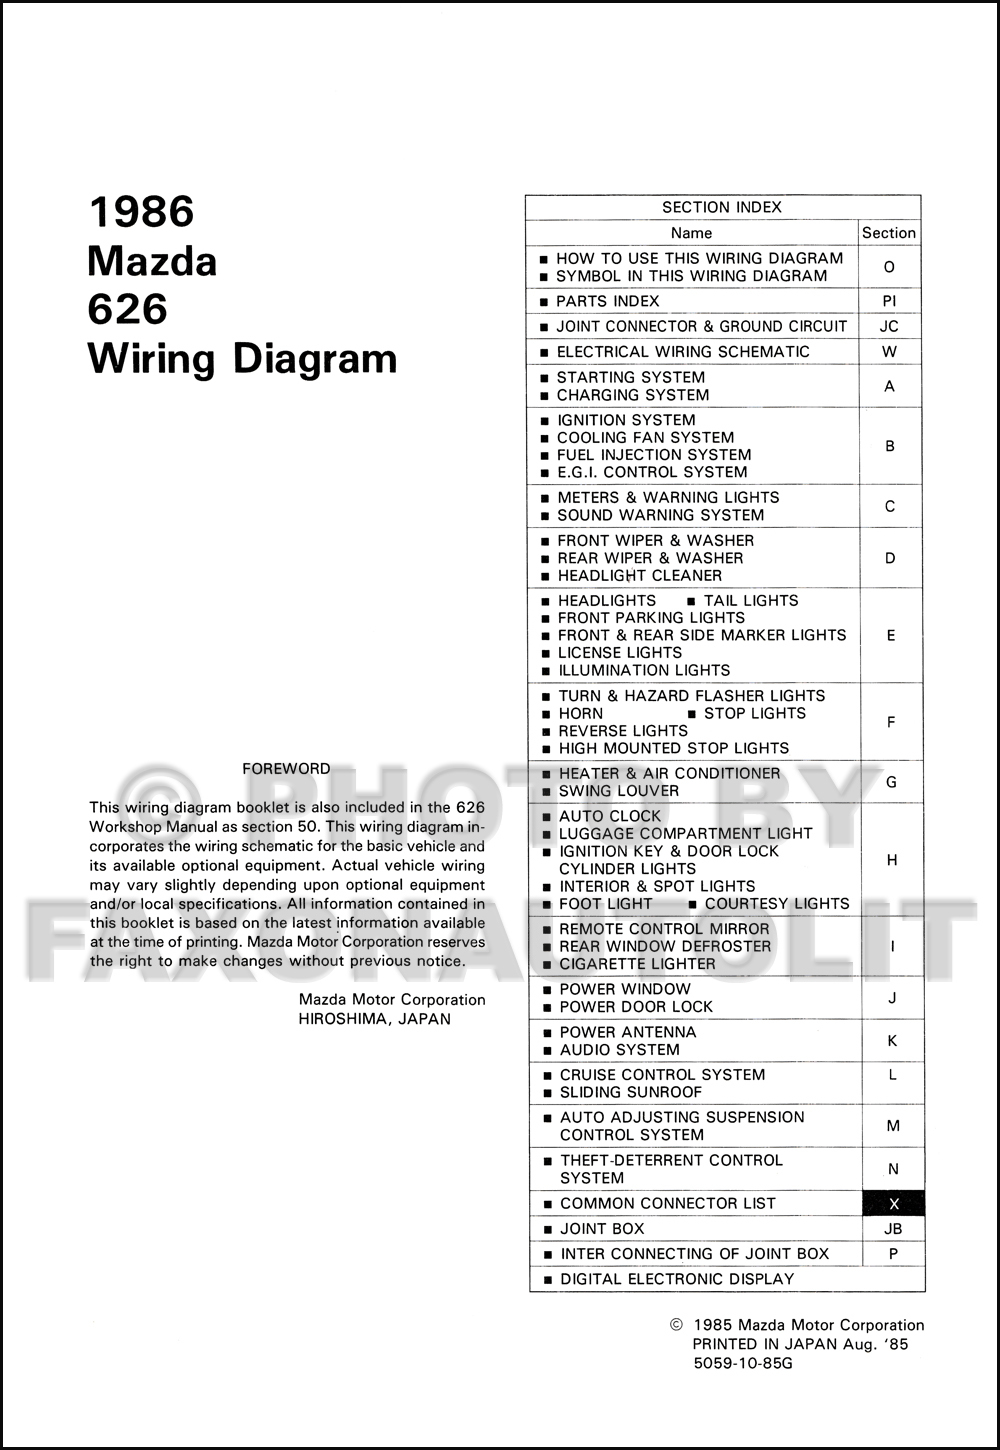 Mazda Distributor Wiring Diagram Library 1989 B2200 1986 626 Manual Original Rh Faxonautoliterature Com 2002